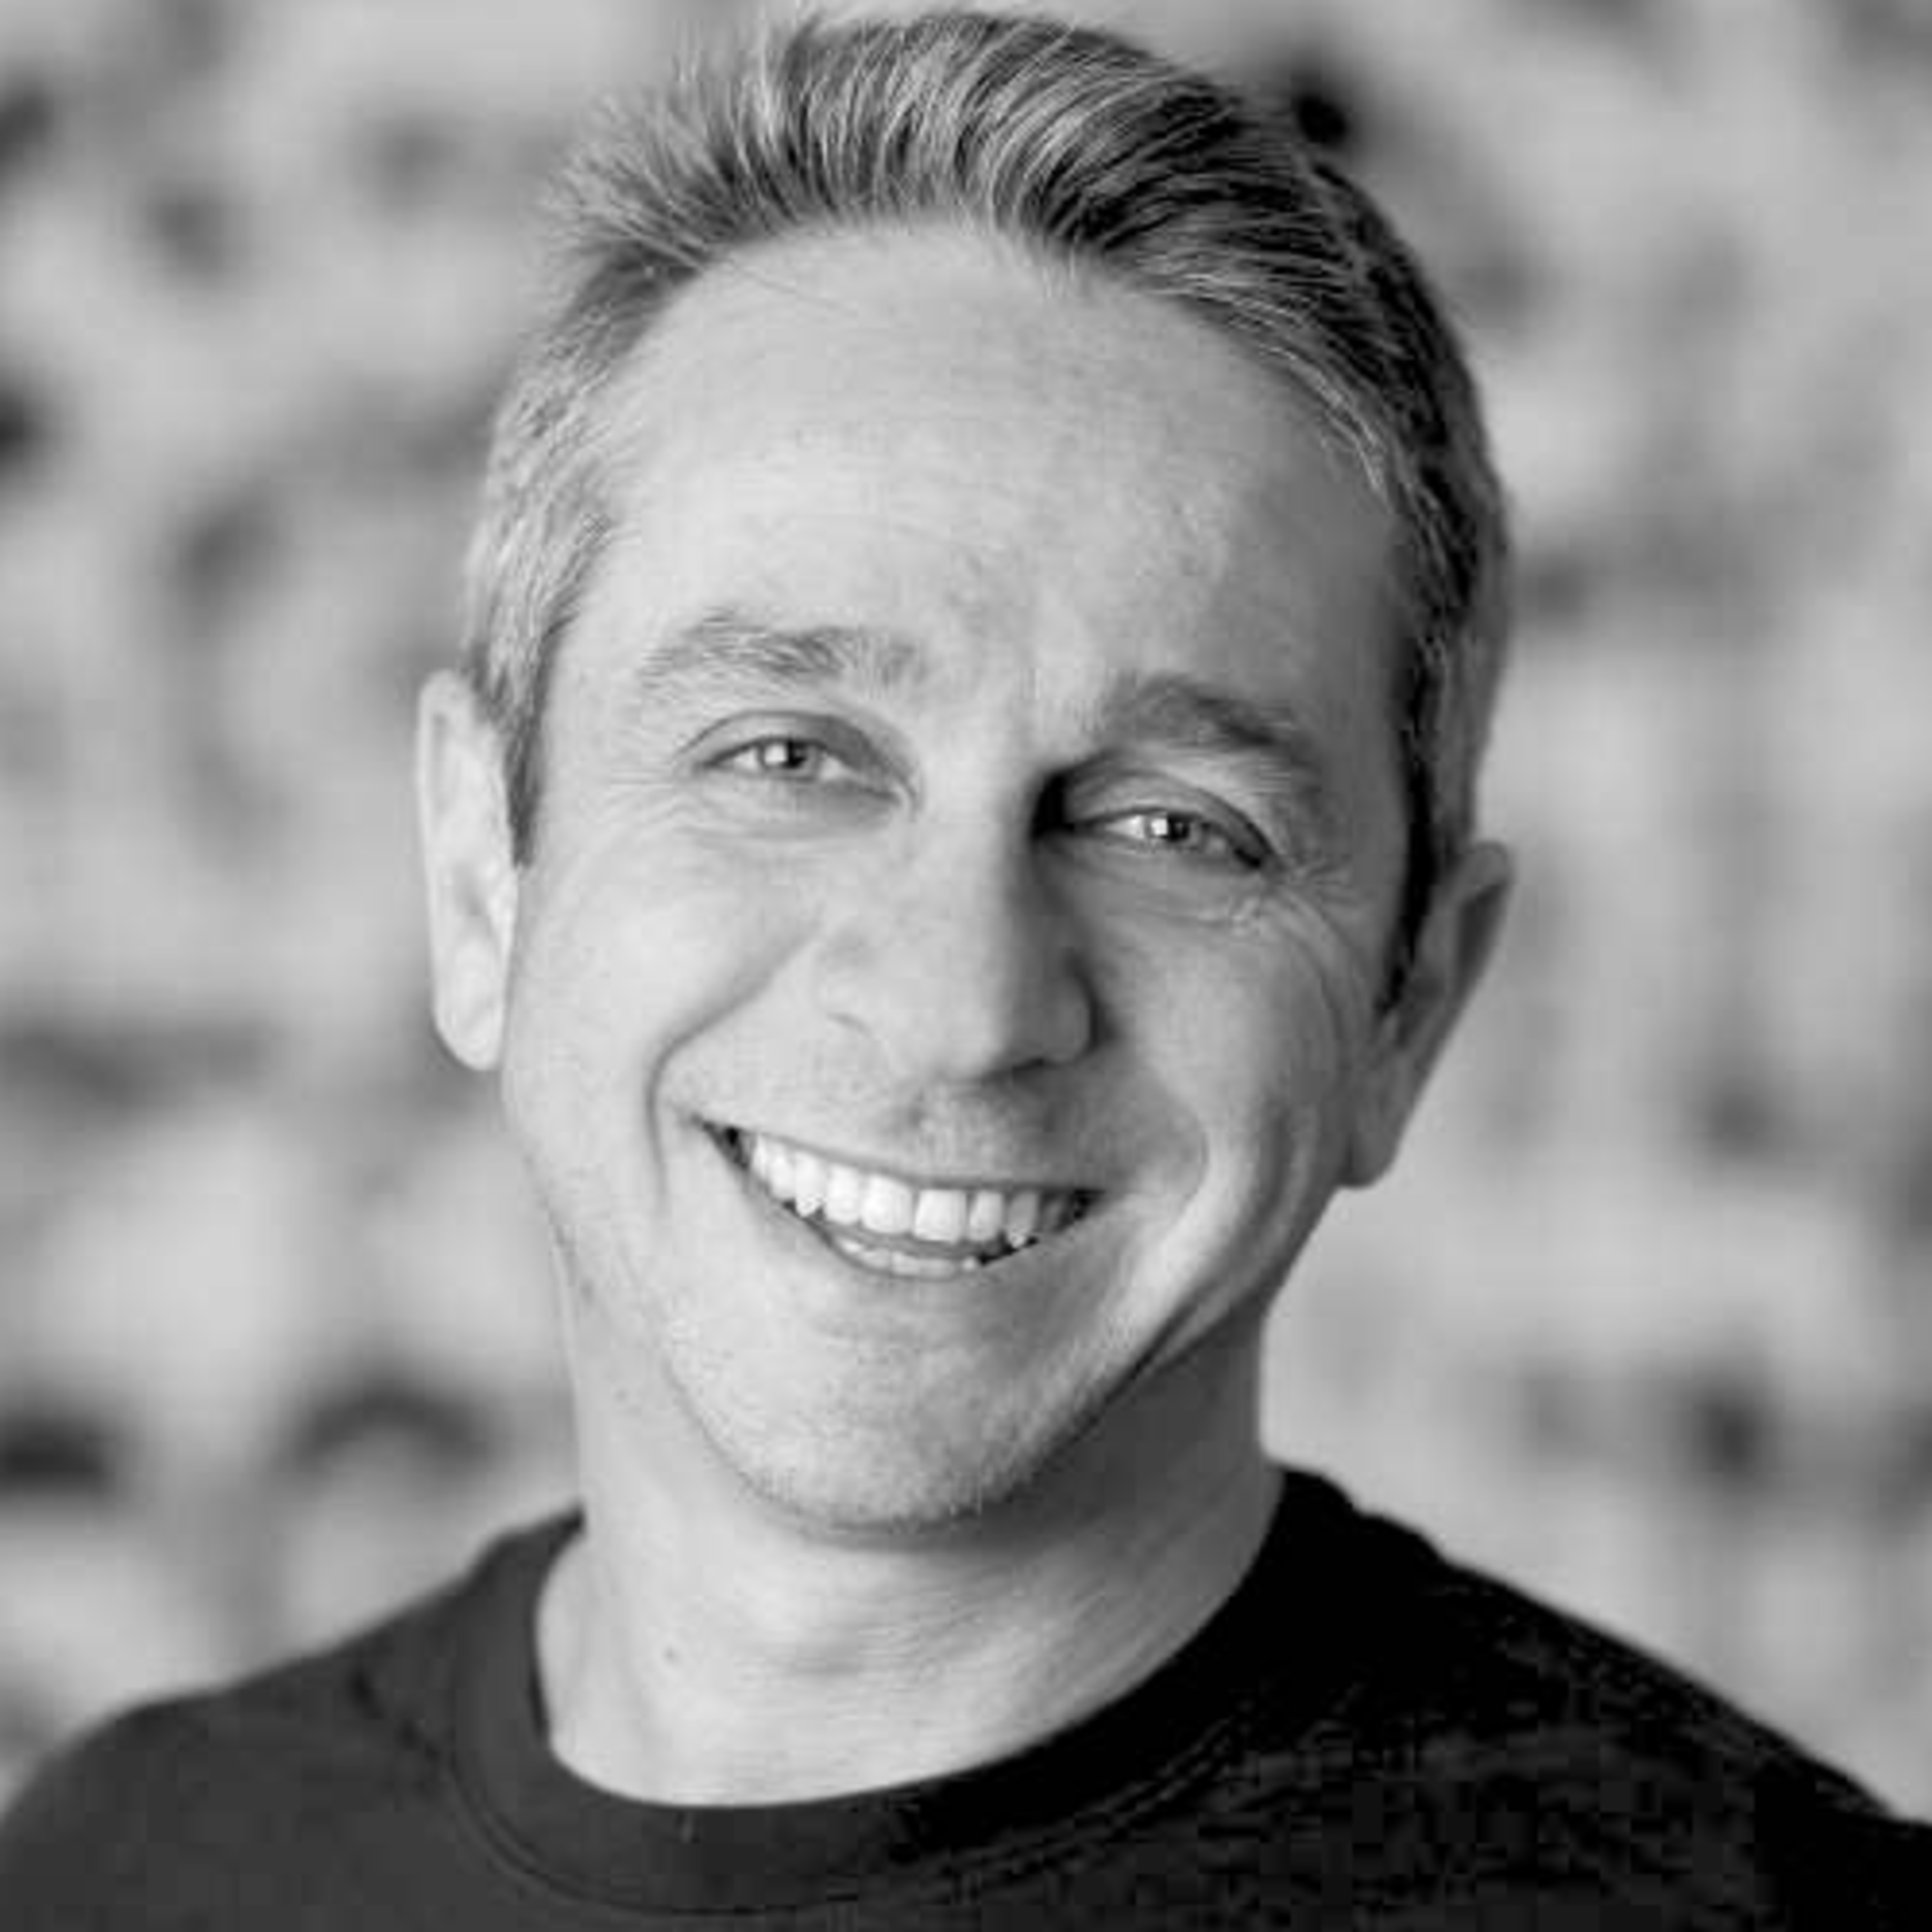 Josh Kopelman, Founder of First Round Capital and investor in Uber, Square & Flatiron, on living in Philly, investing in NY and scaling teams beyond Silicon Valley.